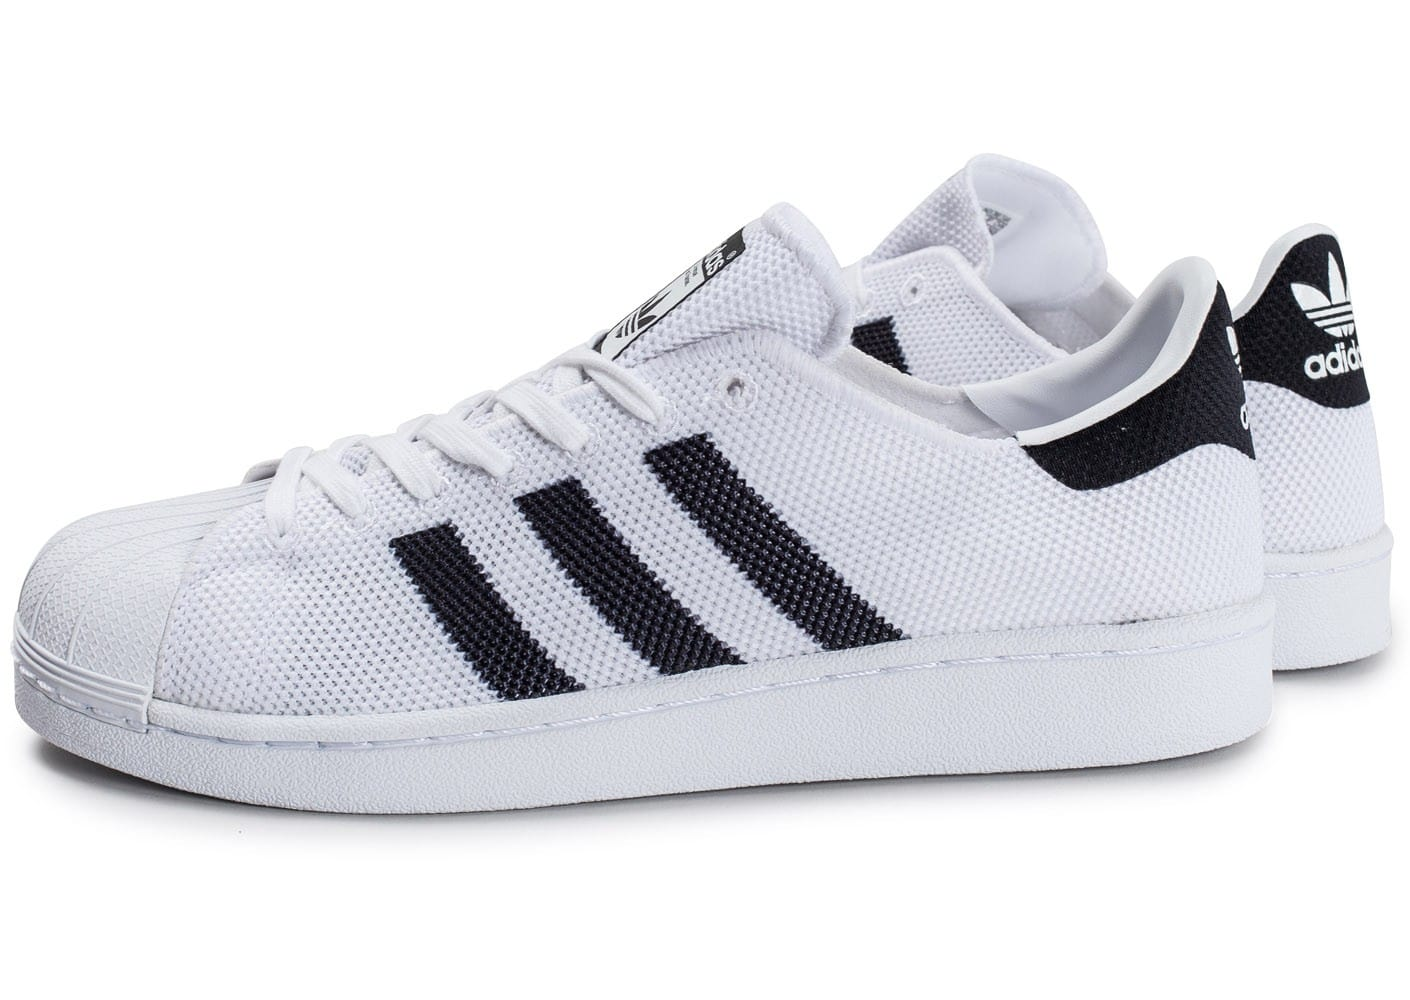 adidas superstar mesh blanche chaussures homme chausport. Black Bedroom Furniture Sets. Home Design Ideas